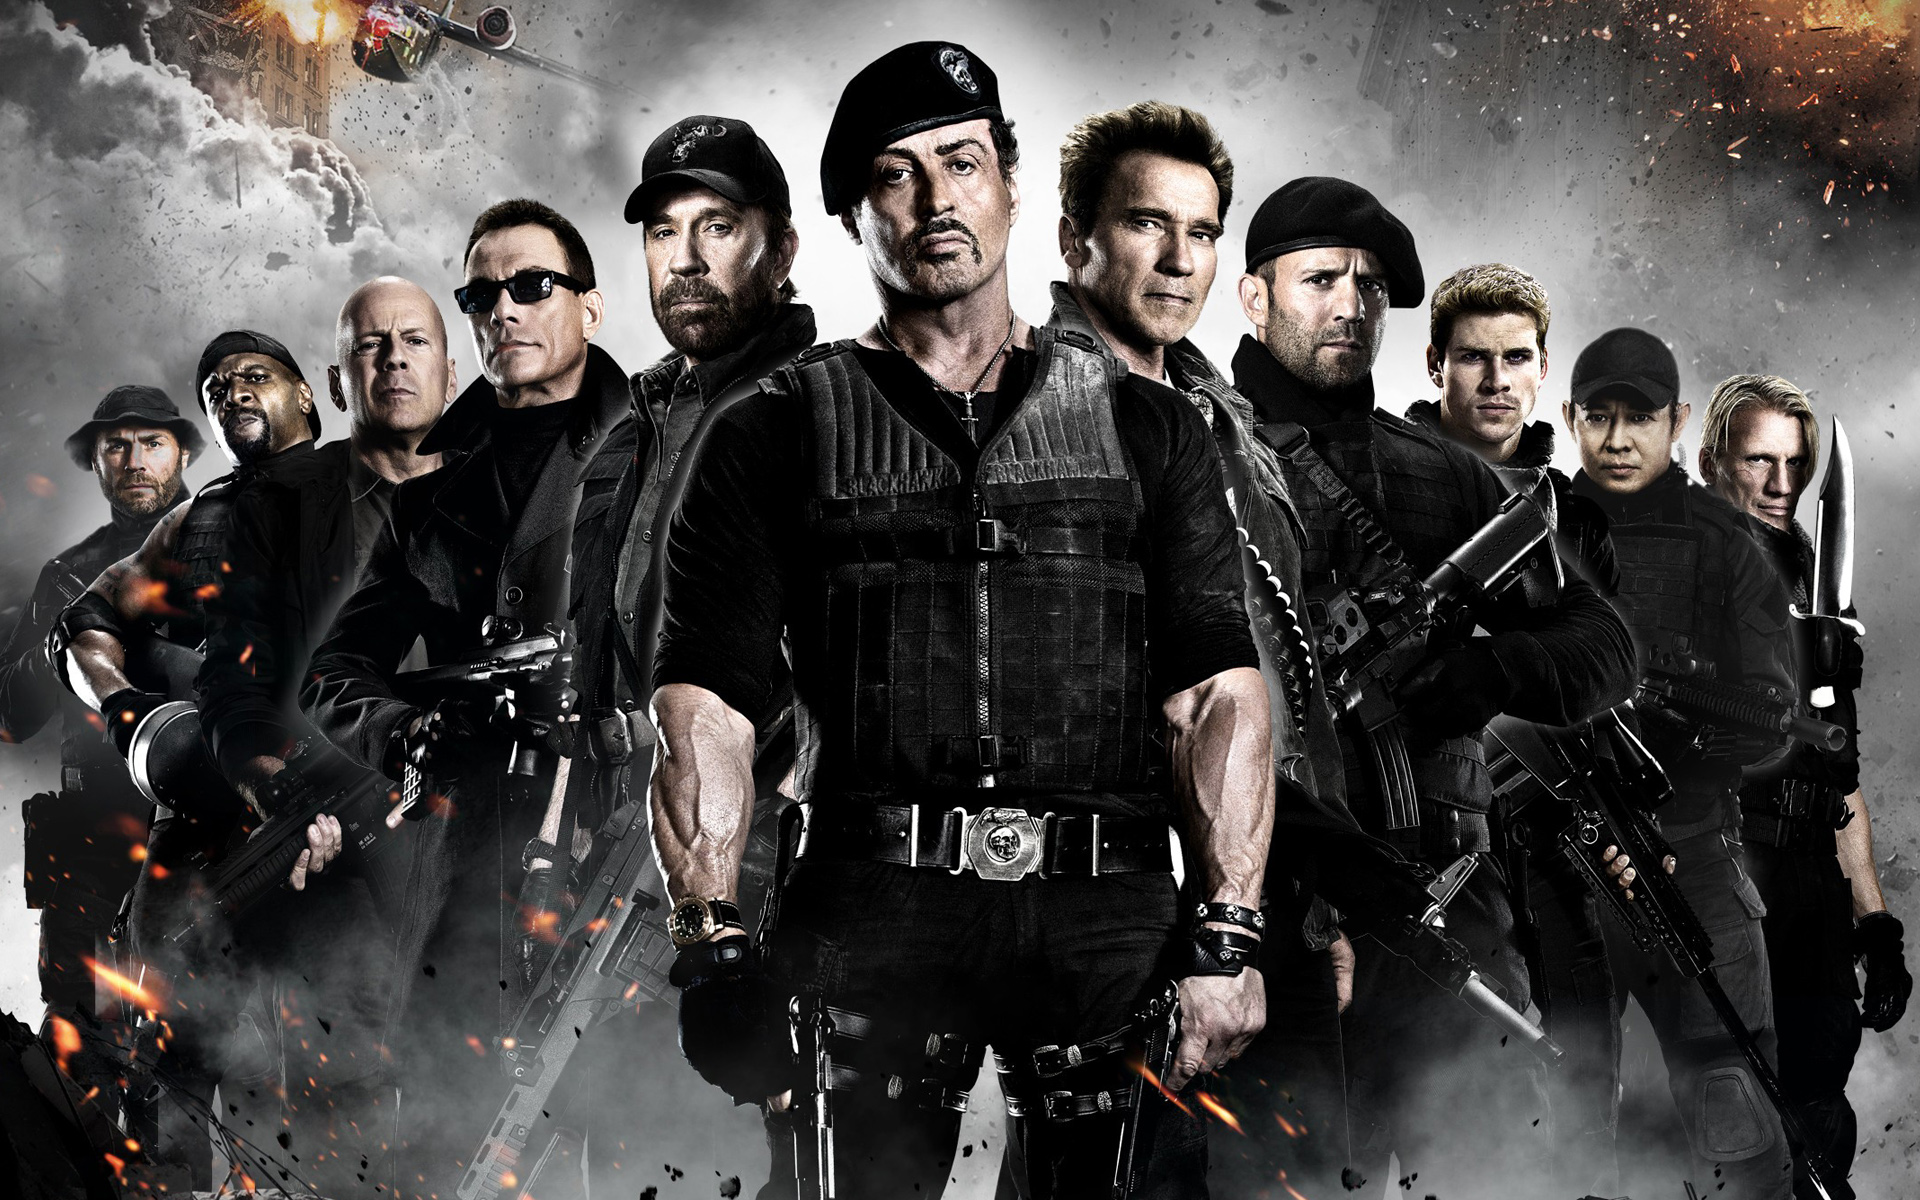 High Resolution Wallpaper | The Expendables 1920x1200 px